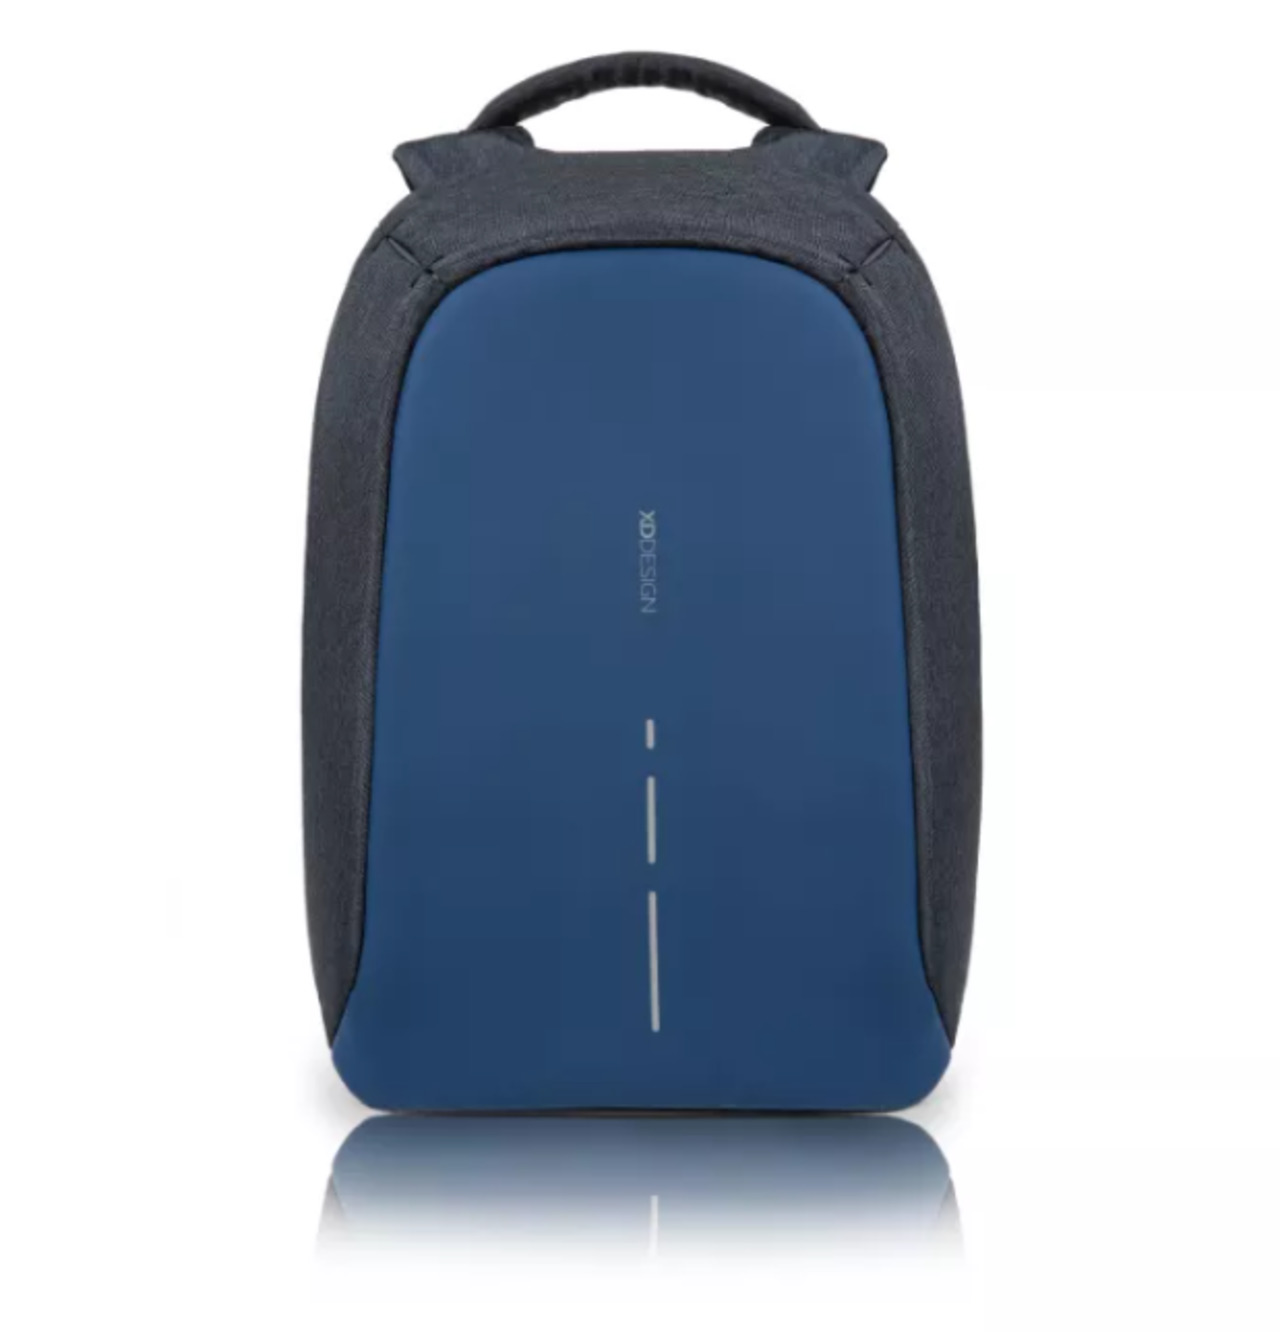 Bobby Compact Anti-Theft Backpack 50% off